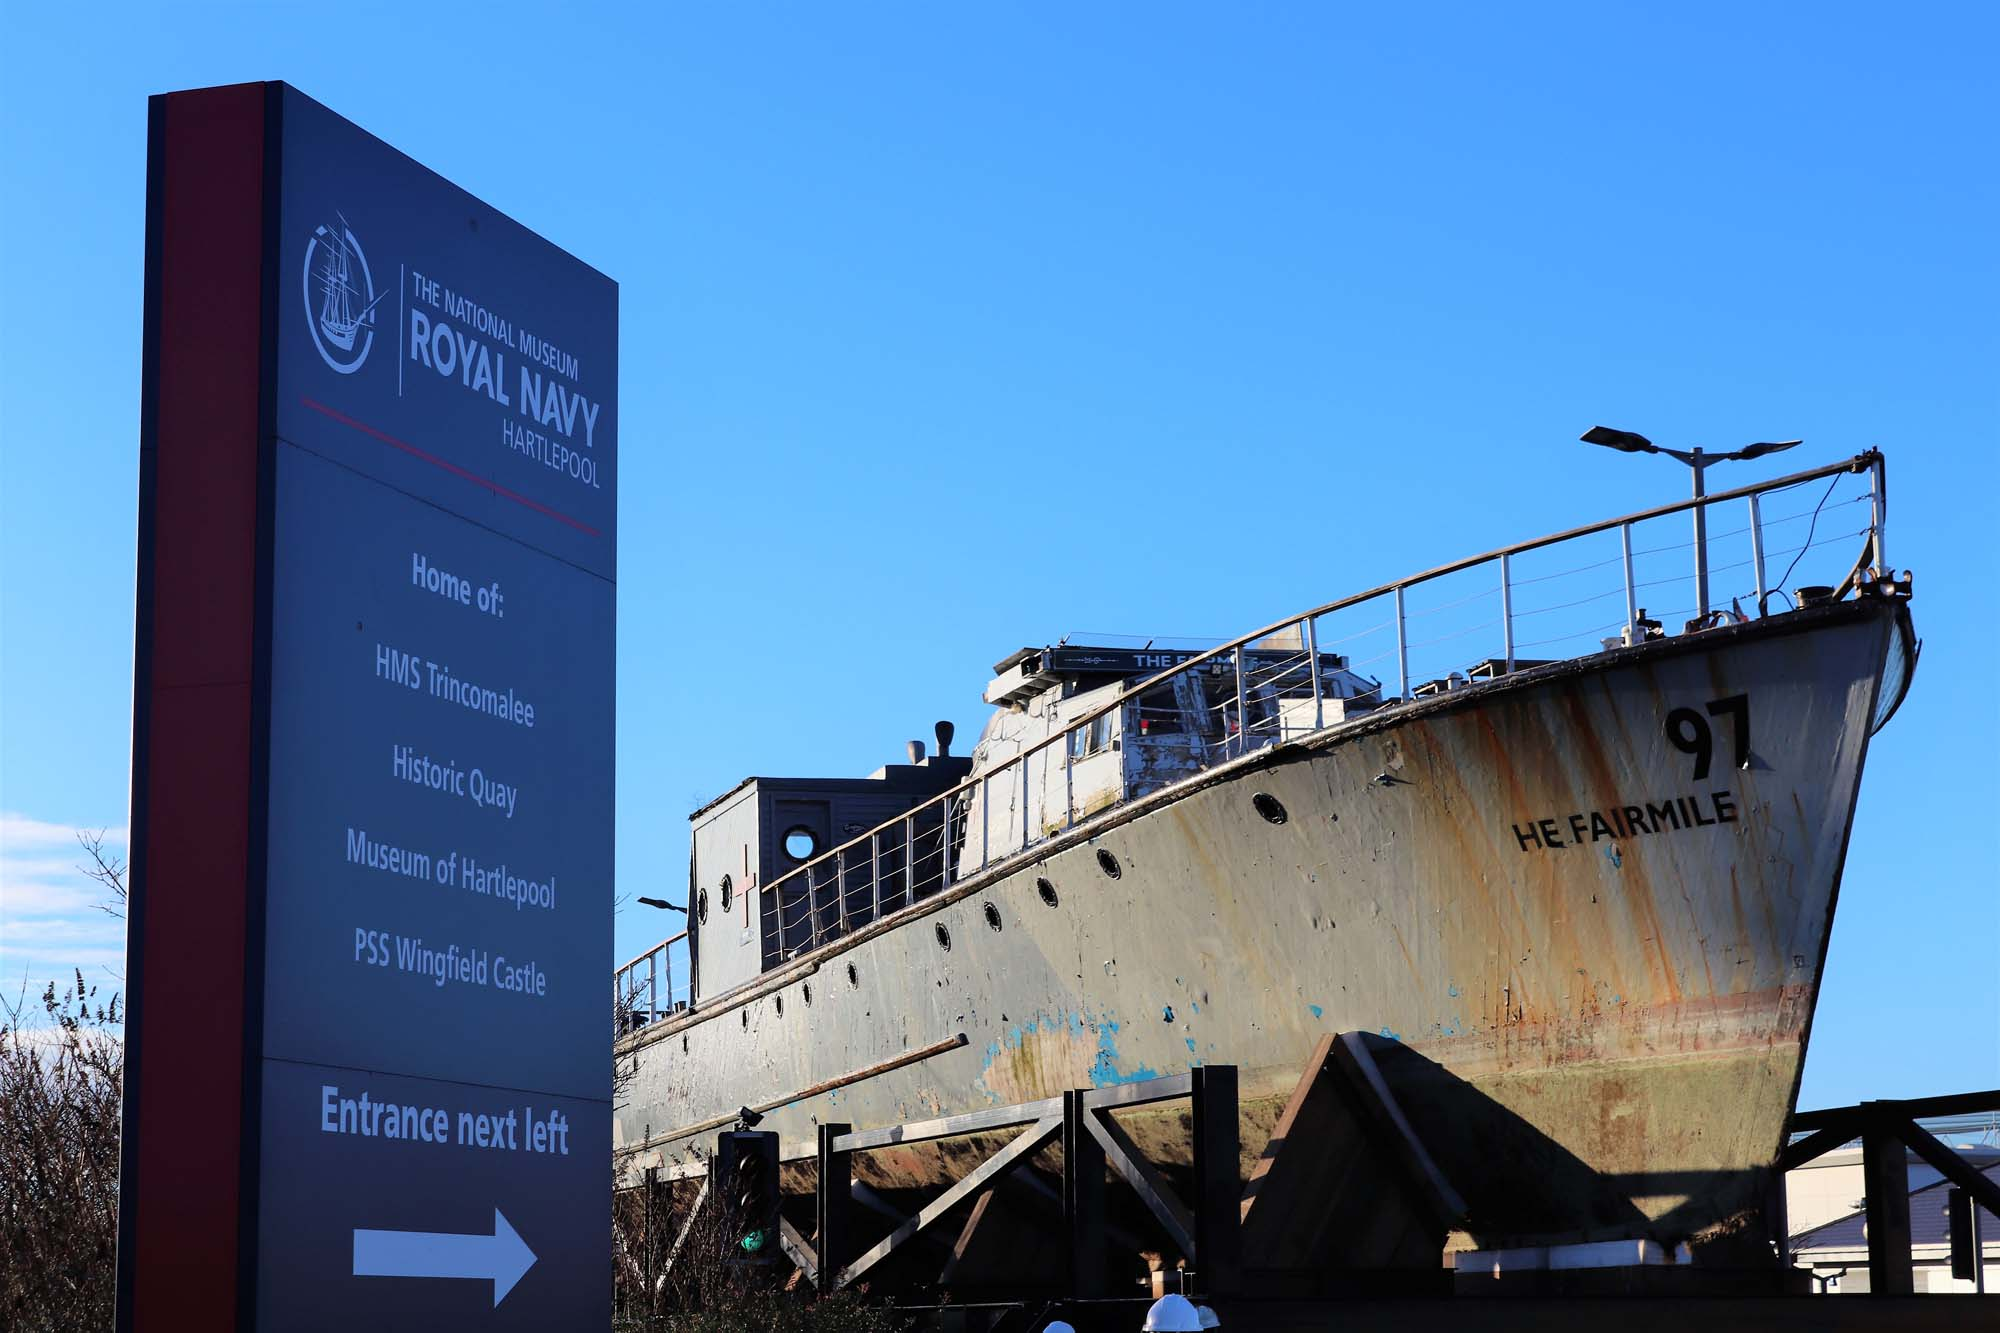 a photo of a the hull of a large grey painted boat photographed against a winter blue sky